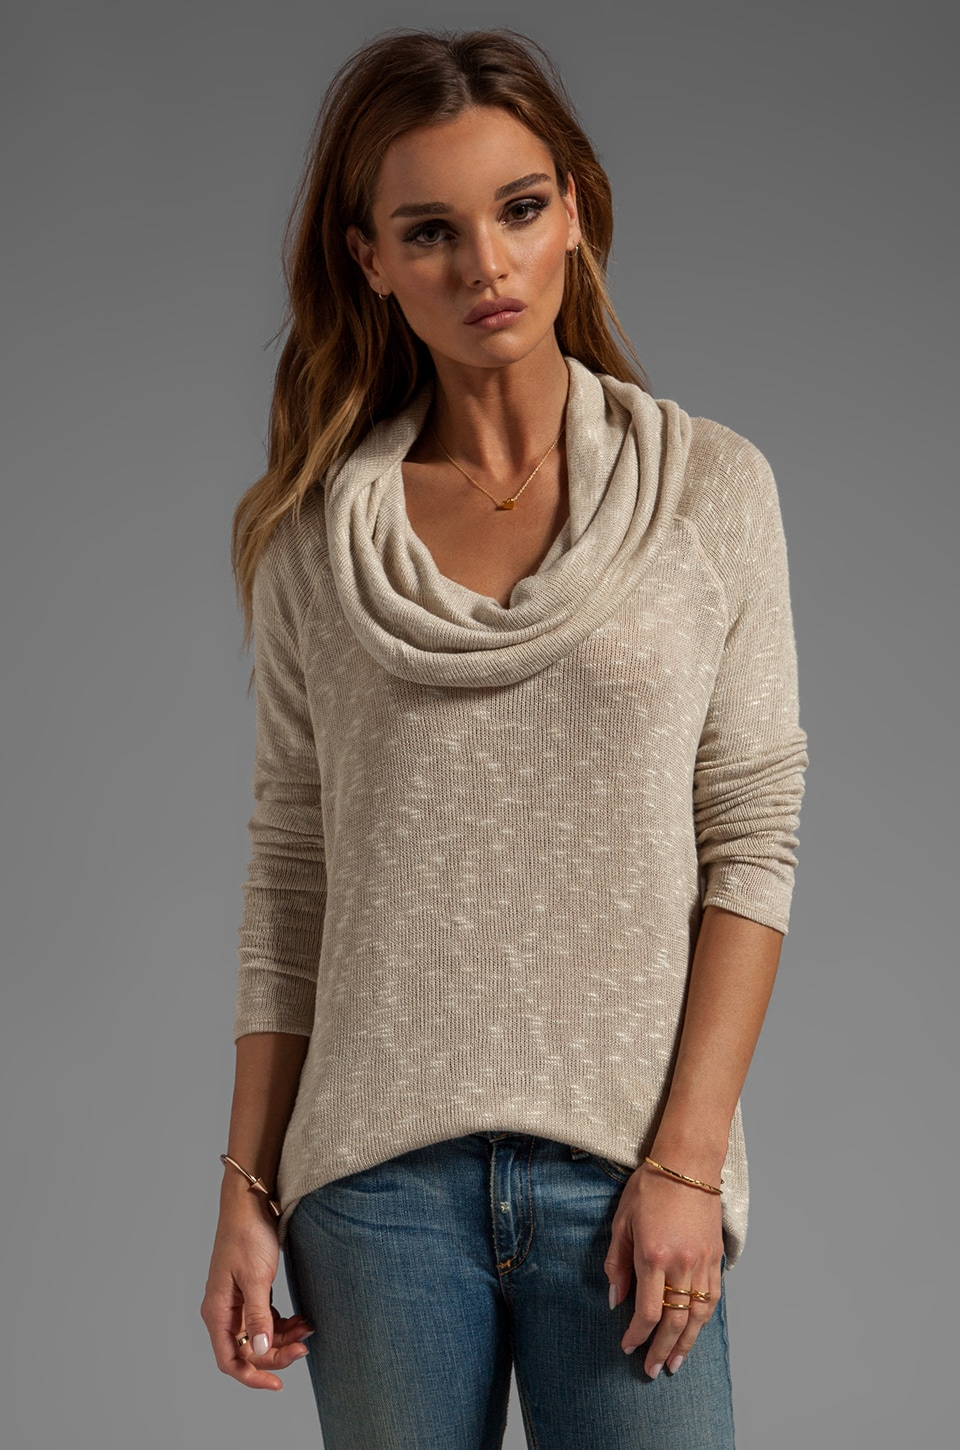 Soft Joie Wayne Sweater in Oatmeal